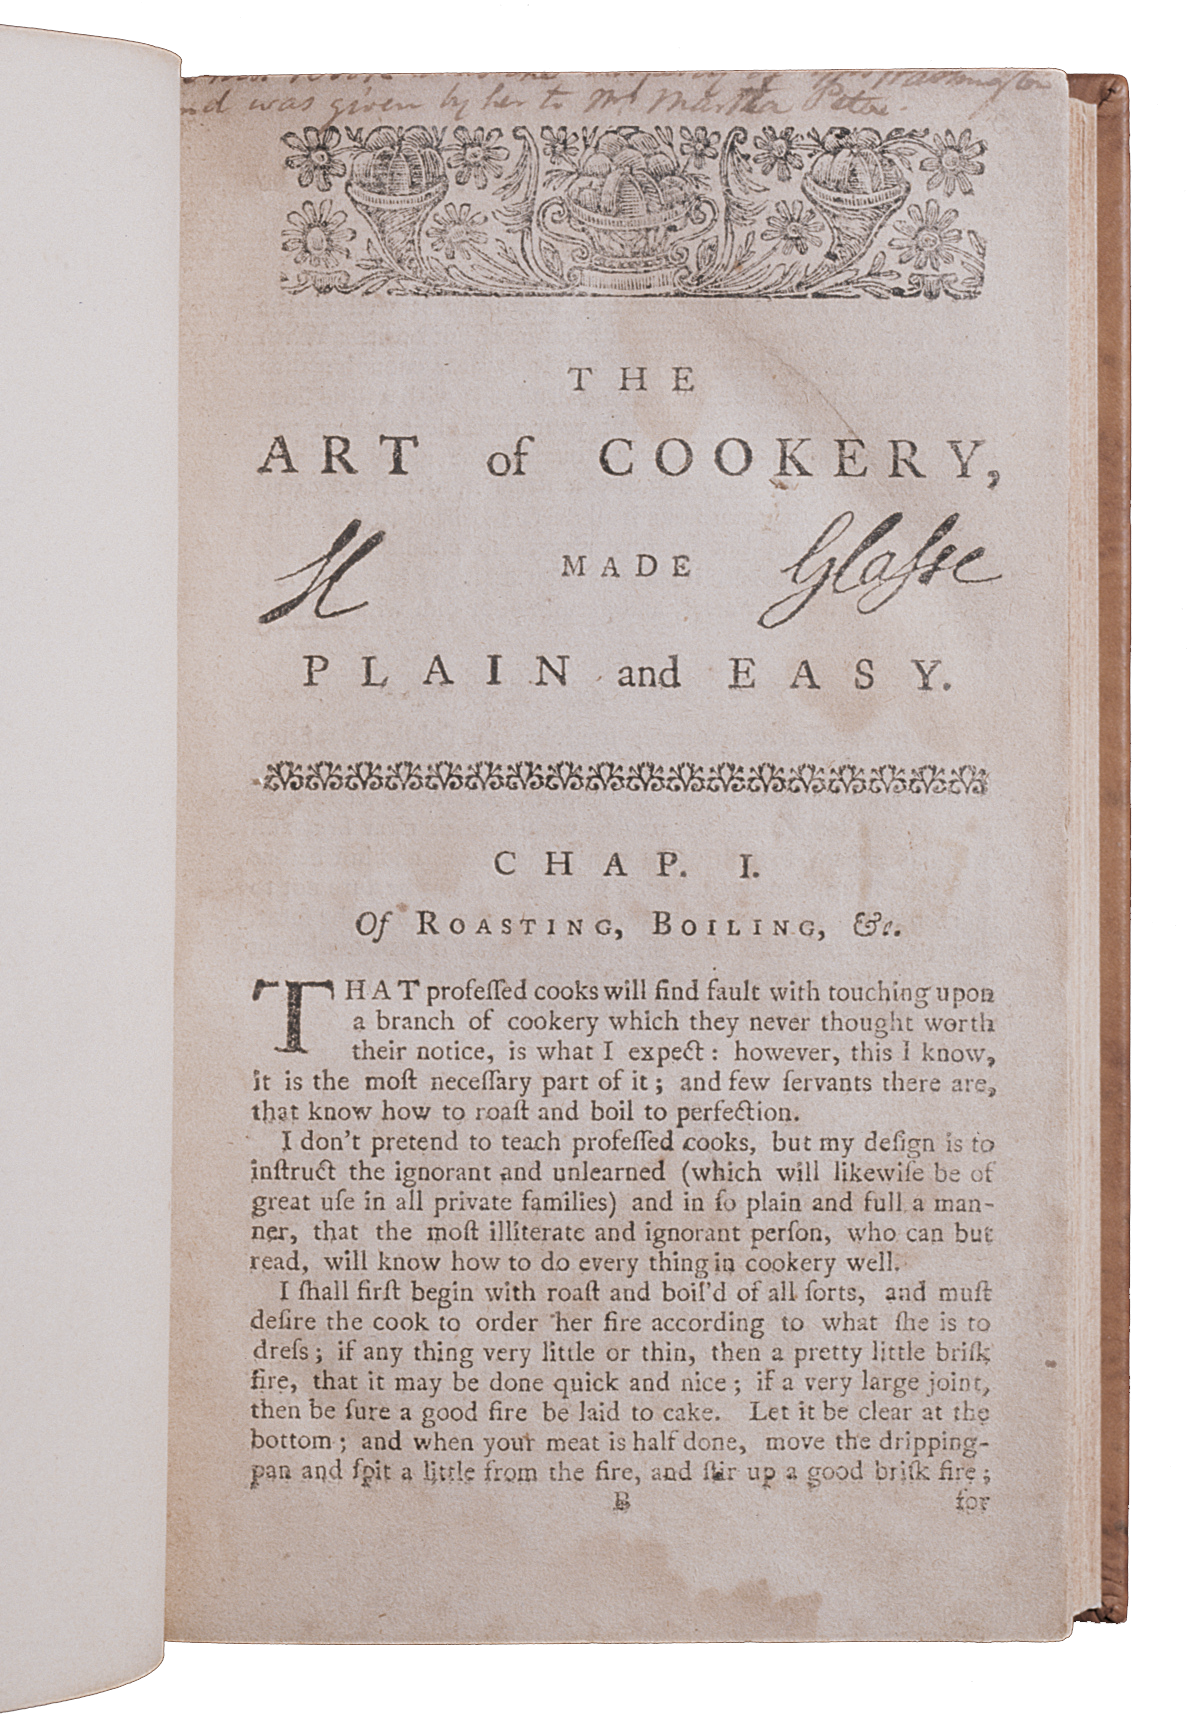 Martha Washington's copy of The Art of Cookery is part of the special collections at the Washington Library (MVLA)